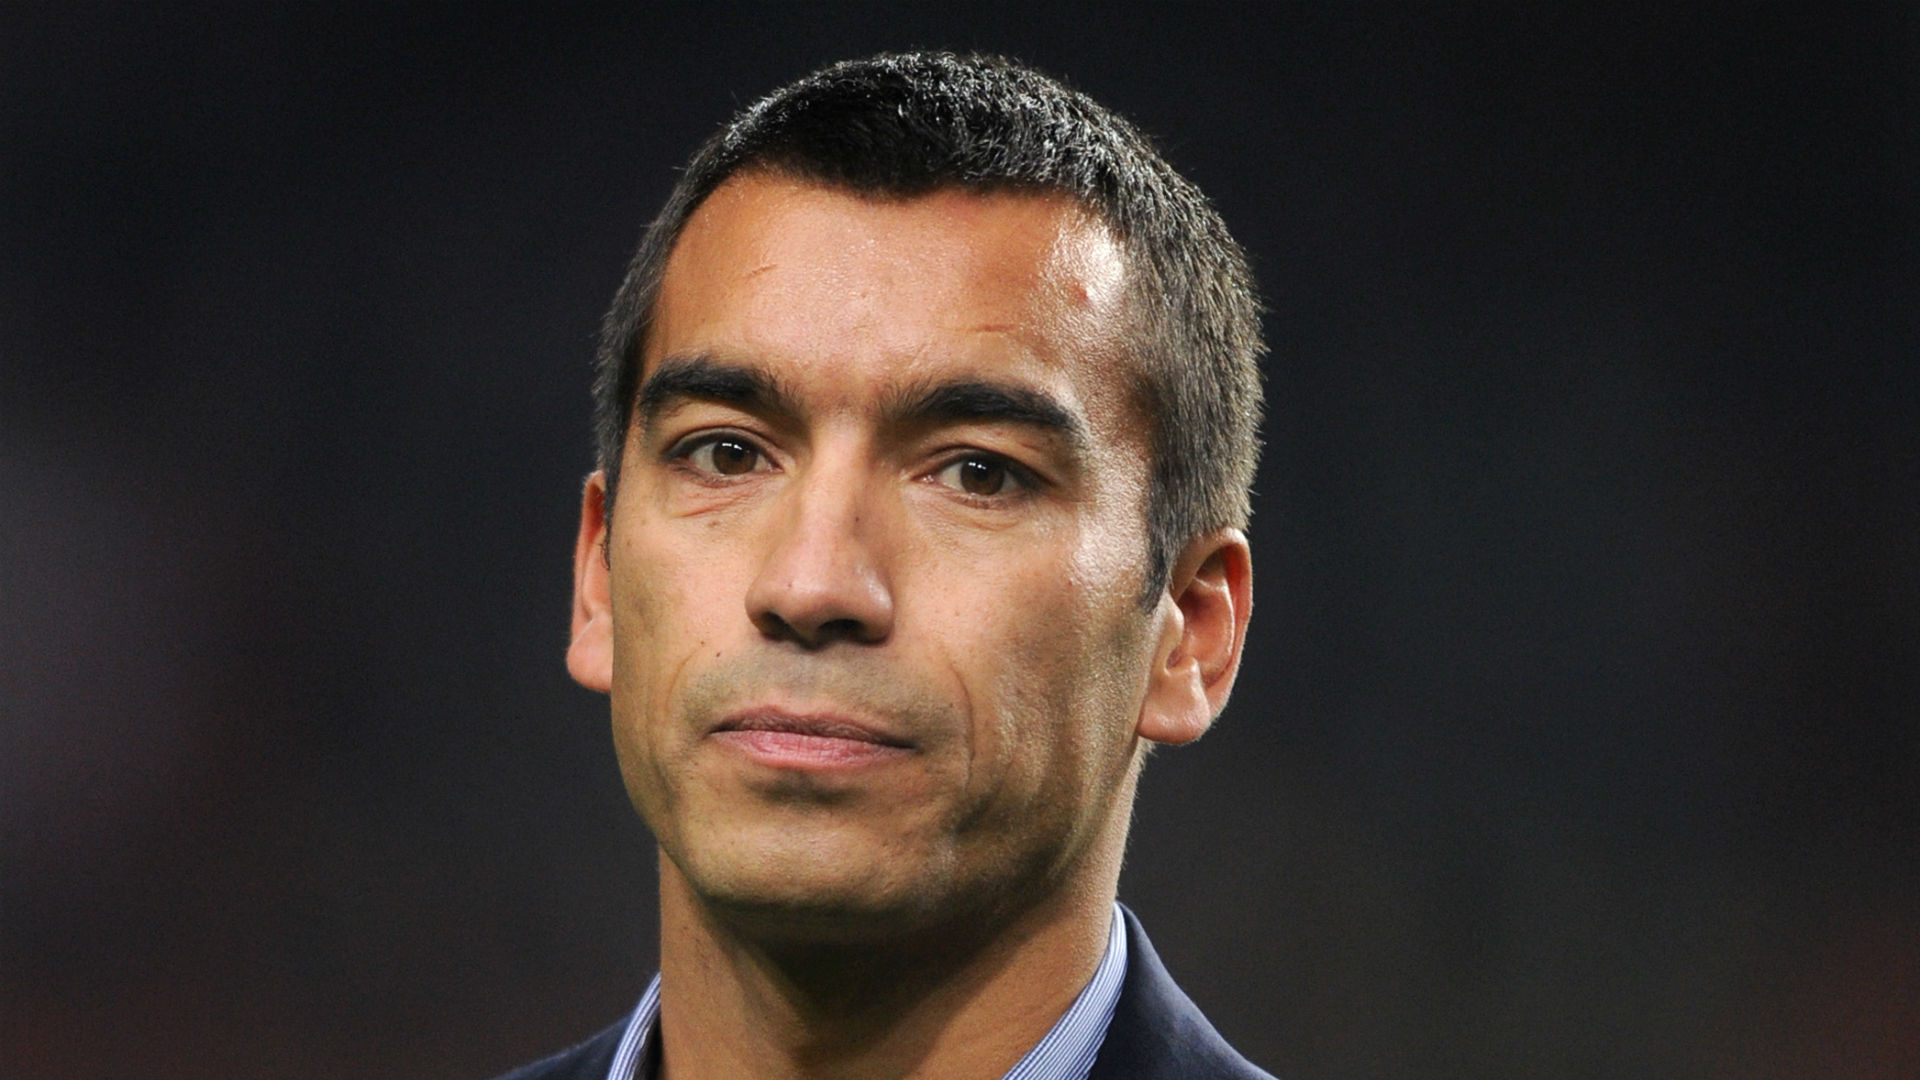 Van Bronckhorst ends Man City rumours with Guangzhou R&F move